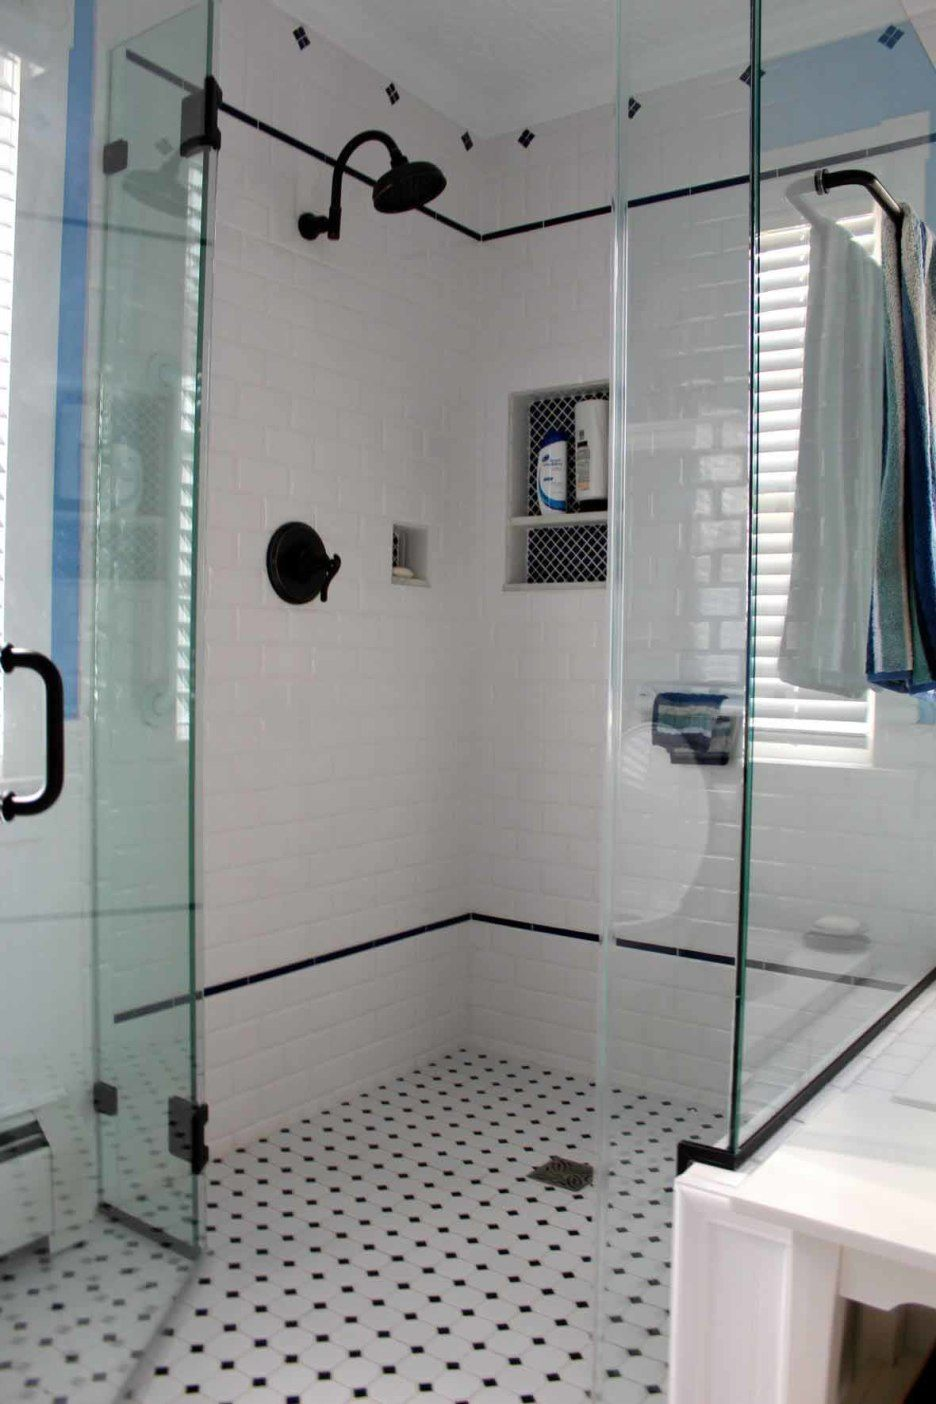 Bathroom white and black diamond mosaic tile floor for for Small bathroom design black and white